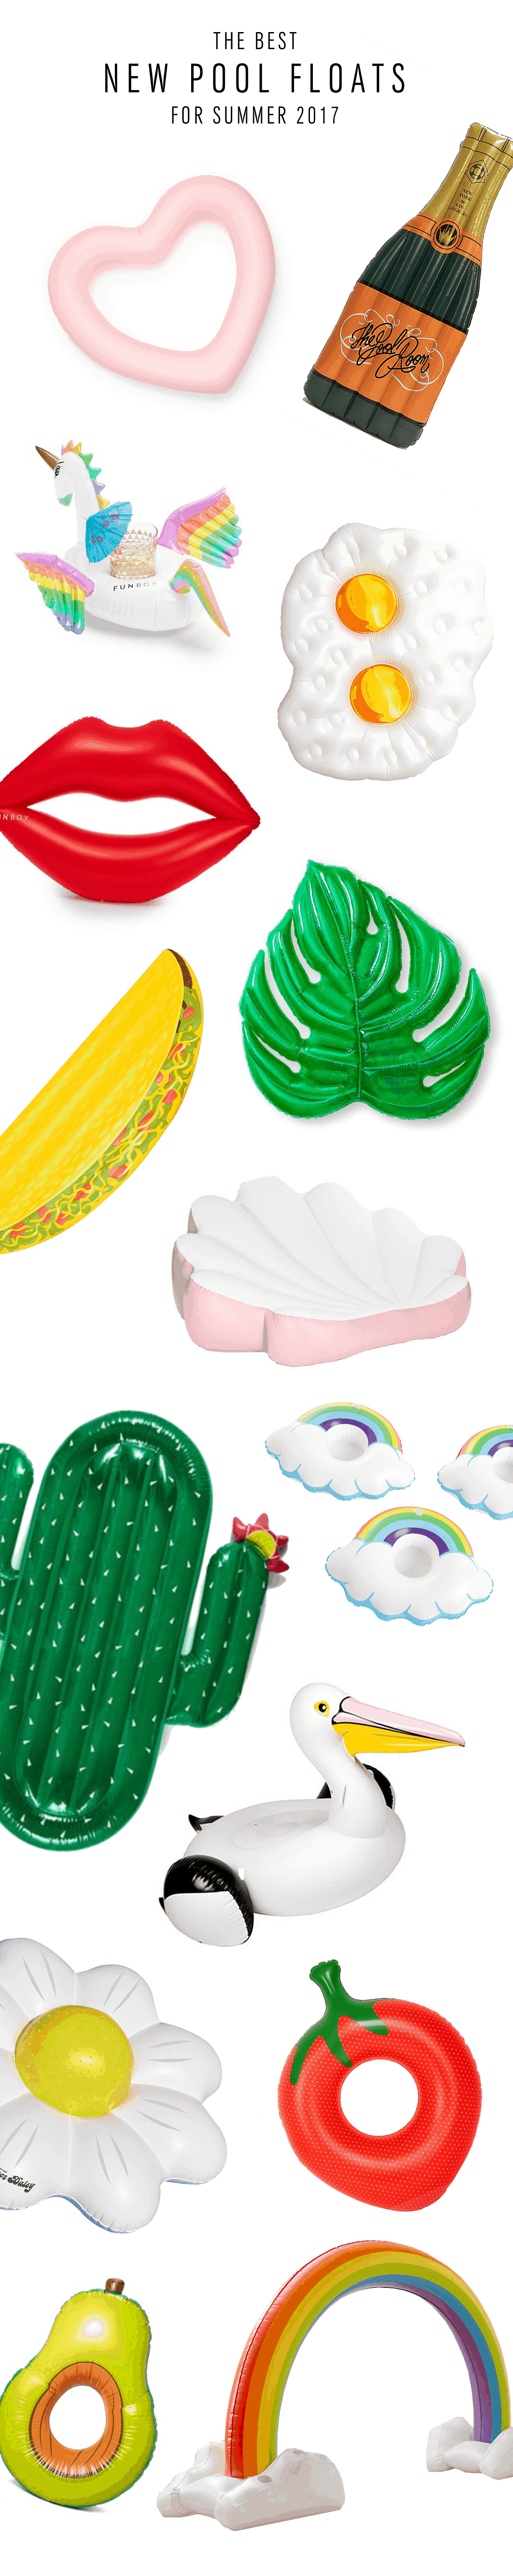 The Best New Pool Floats for Summer 2017 by Sugar & Cloth, an award winning destination for DIY's, home decor, and style.